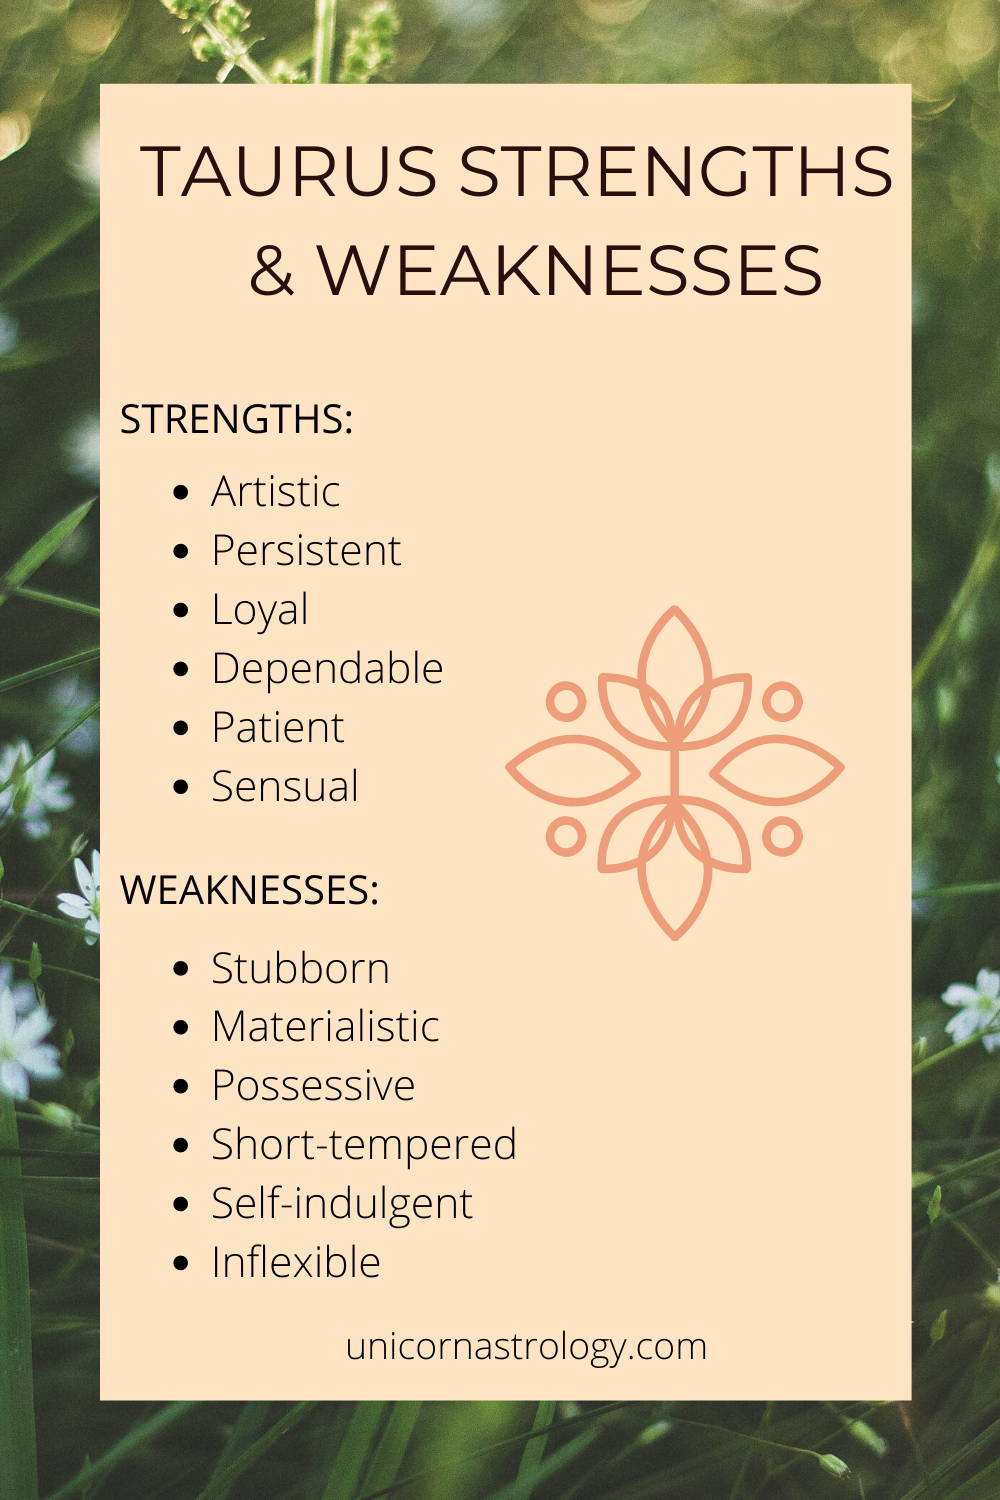 #Taurus #Taurus Strengths and Weaknesses #astrology #